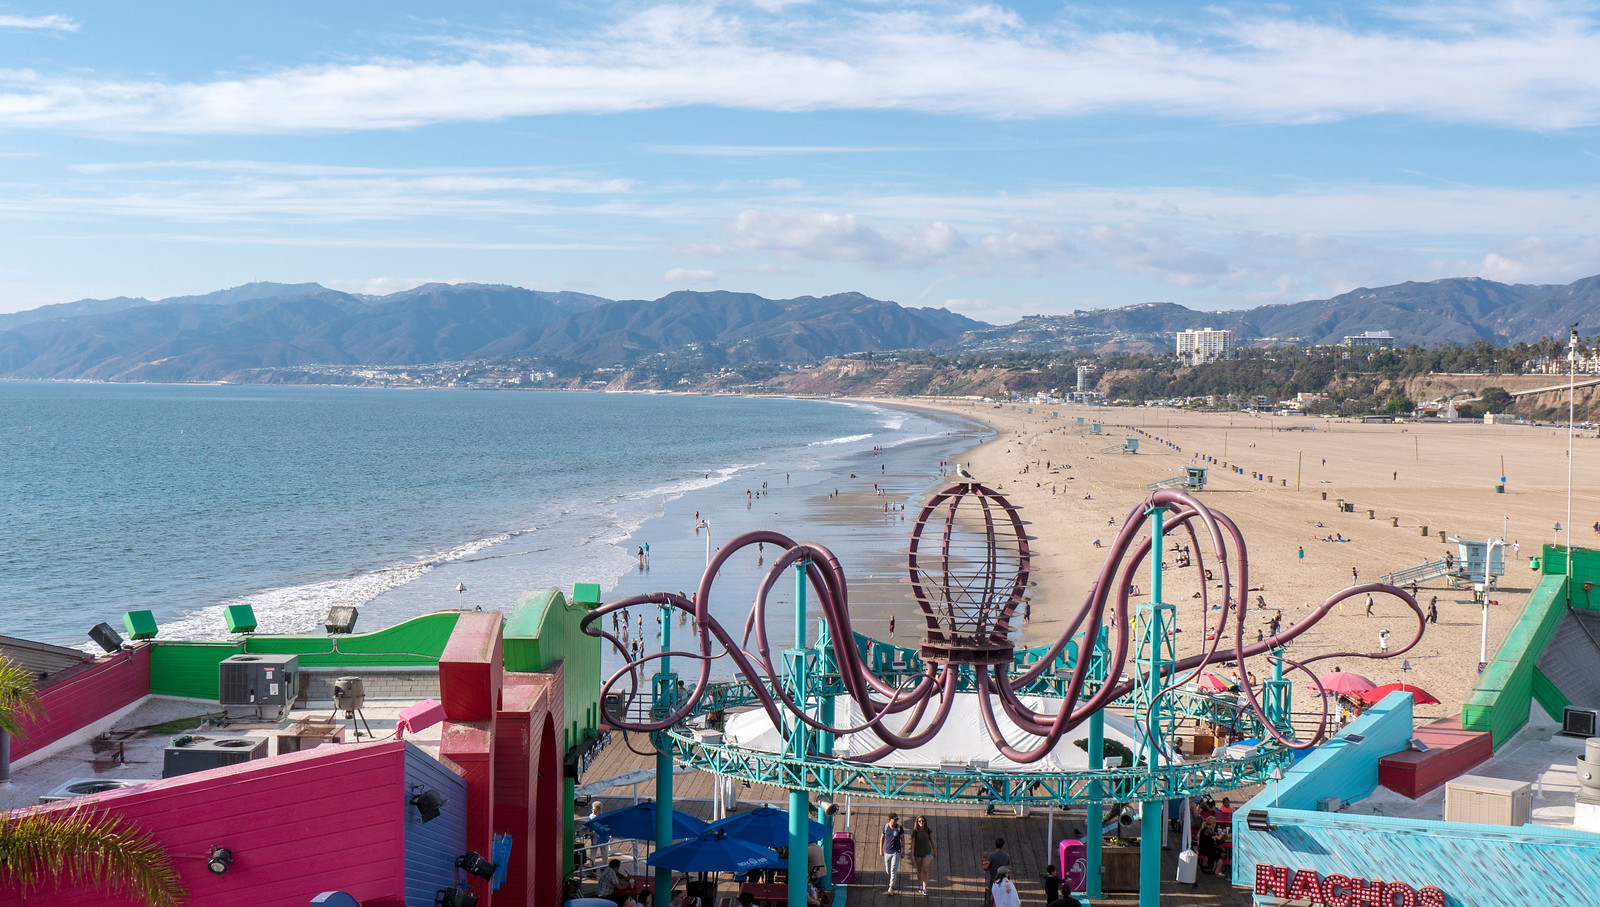 Santa Monica Pier - view from the top of the Ferris Wheel in Los Angeles